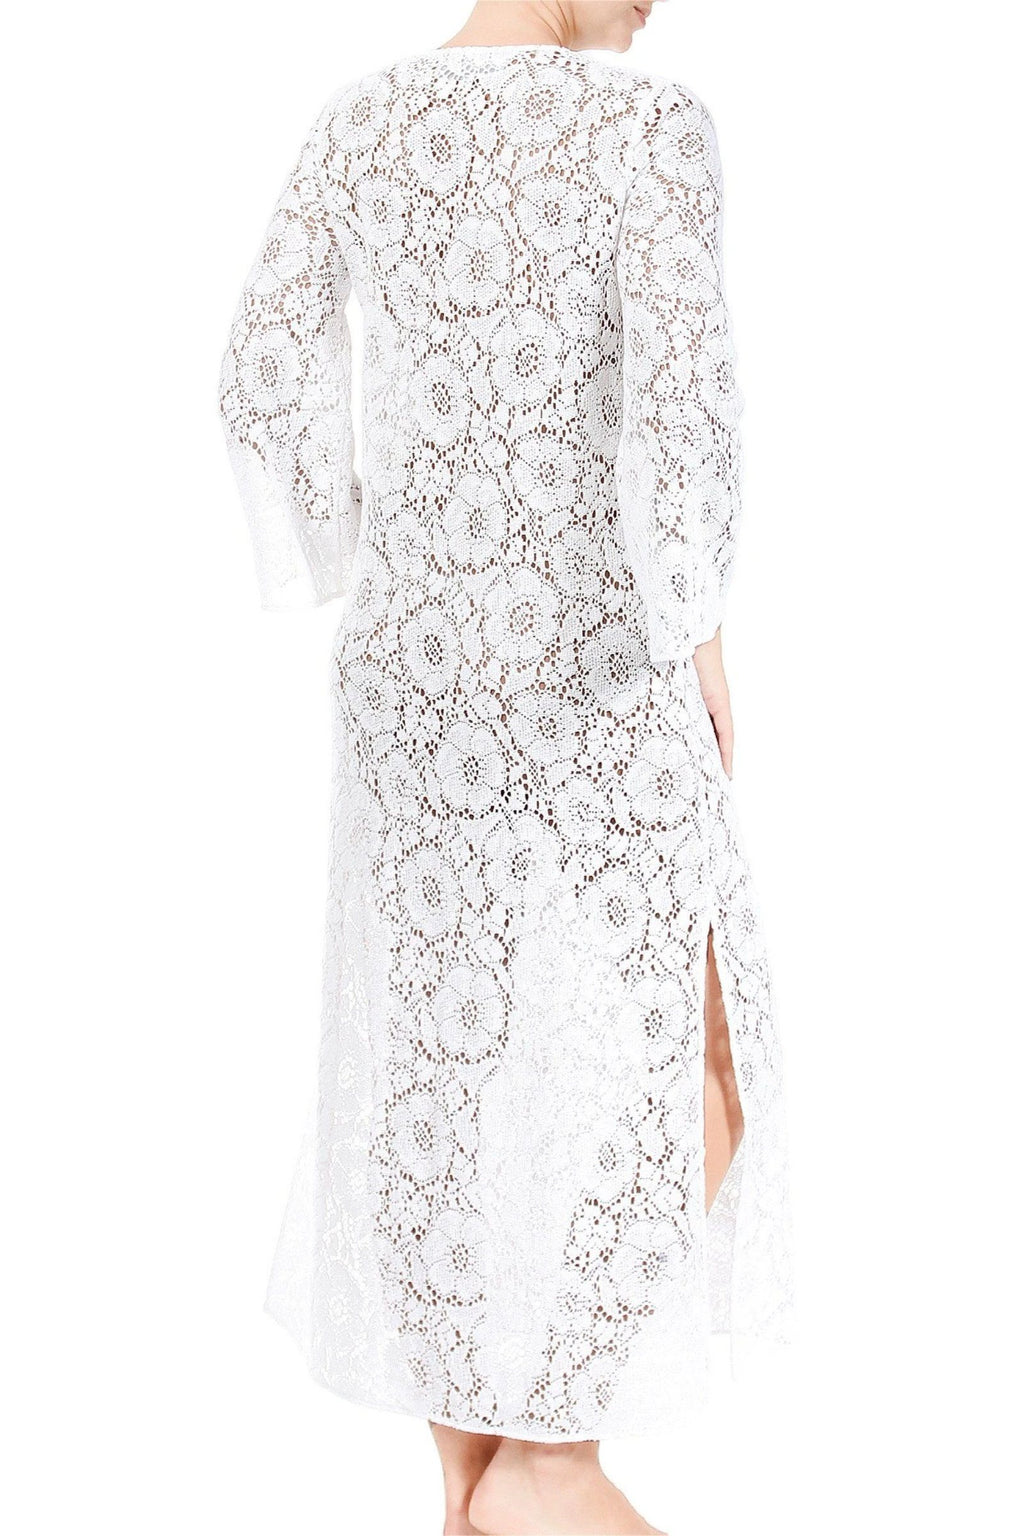 Camellia Crochet Lace Long Tunic Dresses Marie France Van Damme